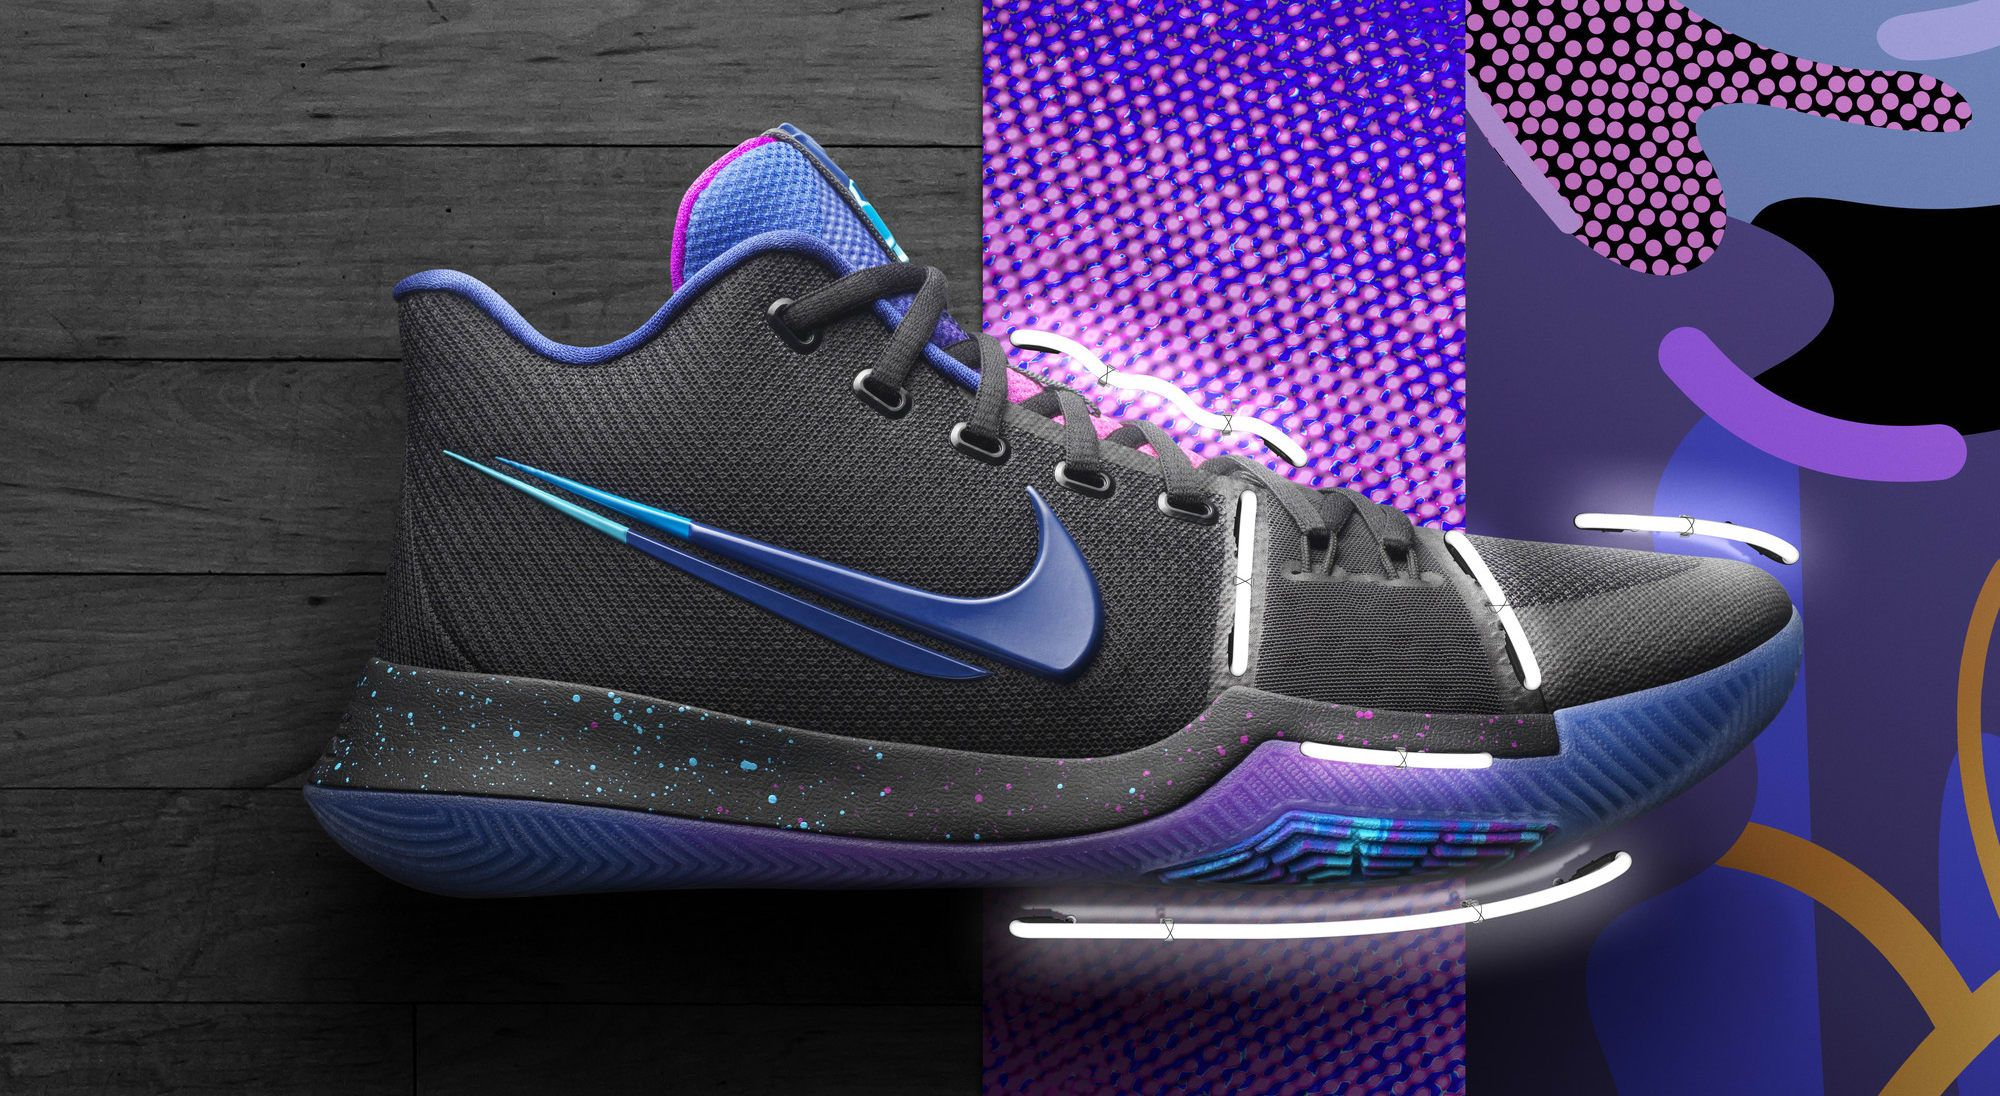 shoes by lebron james kyrie irving sneakers